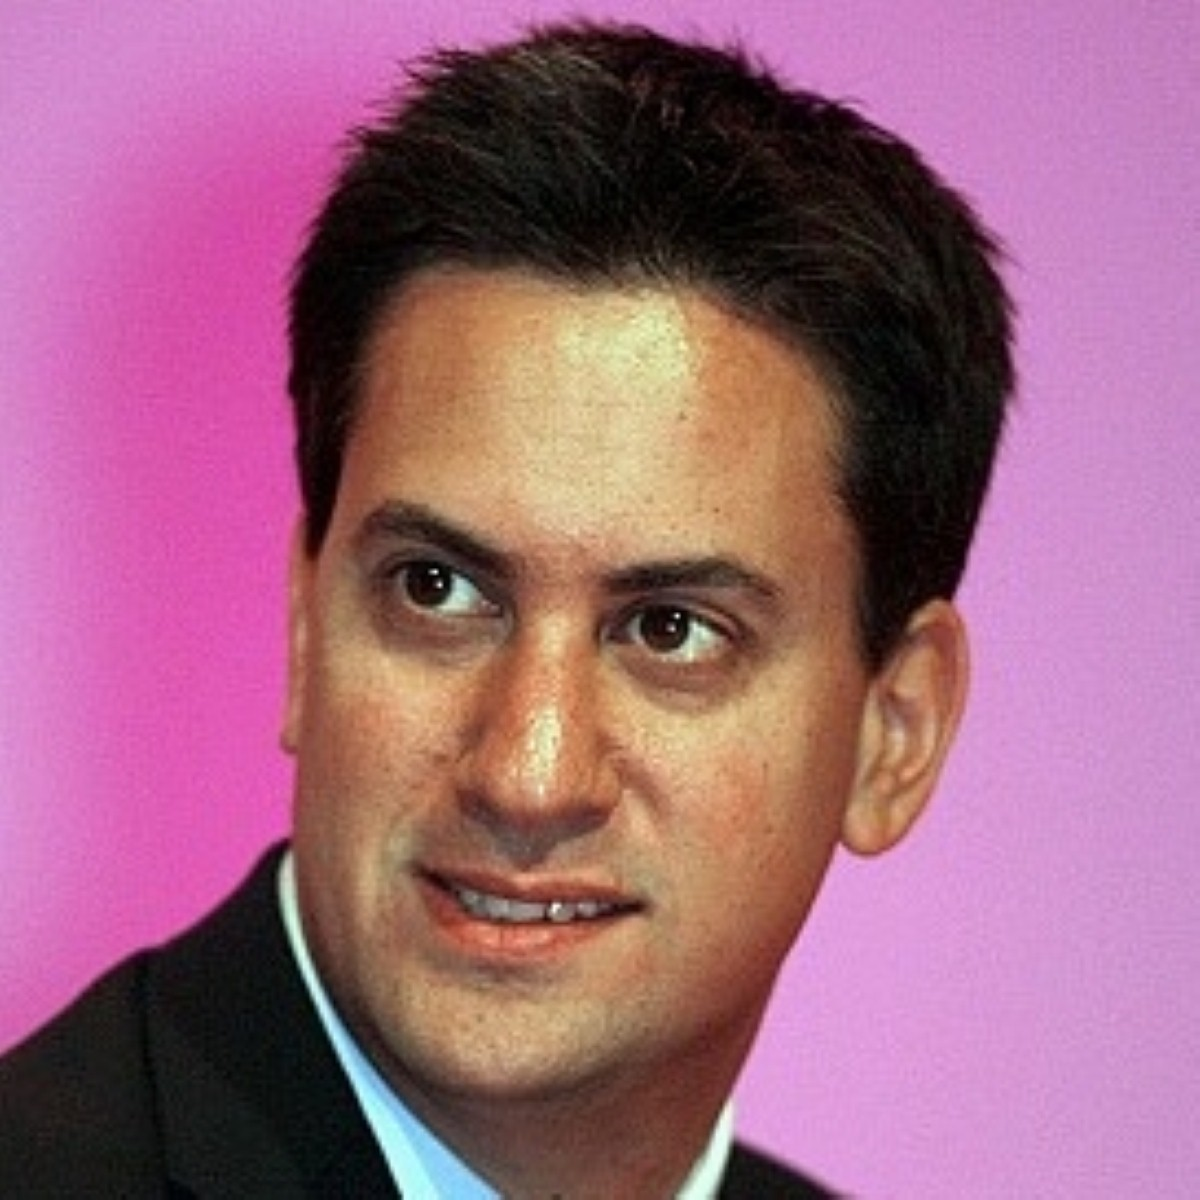 Read Ed Miliband's statement to the Commons on the riots in England in full.